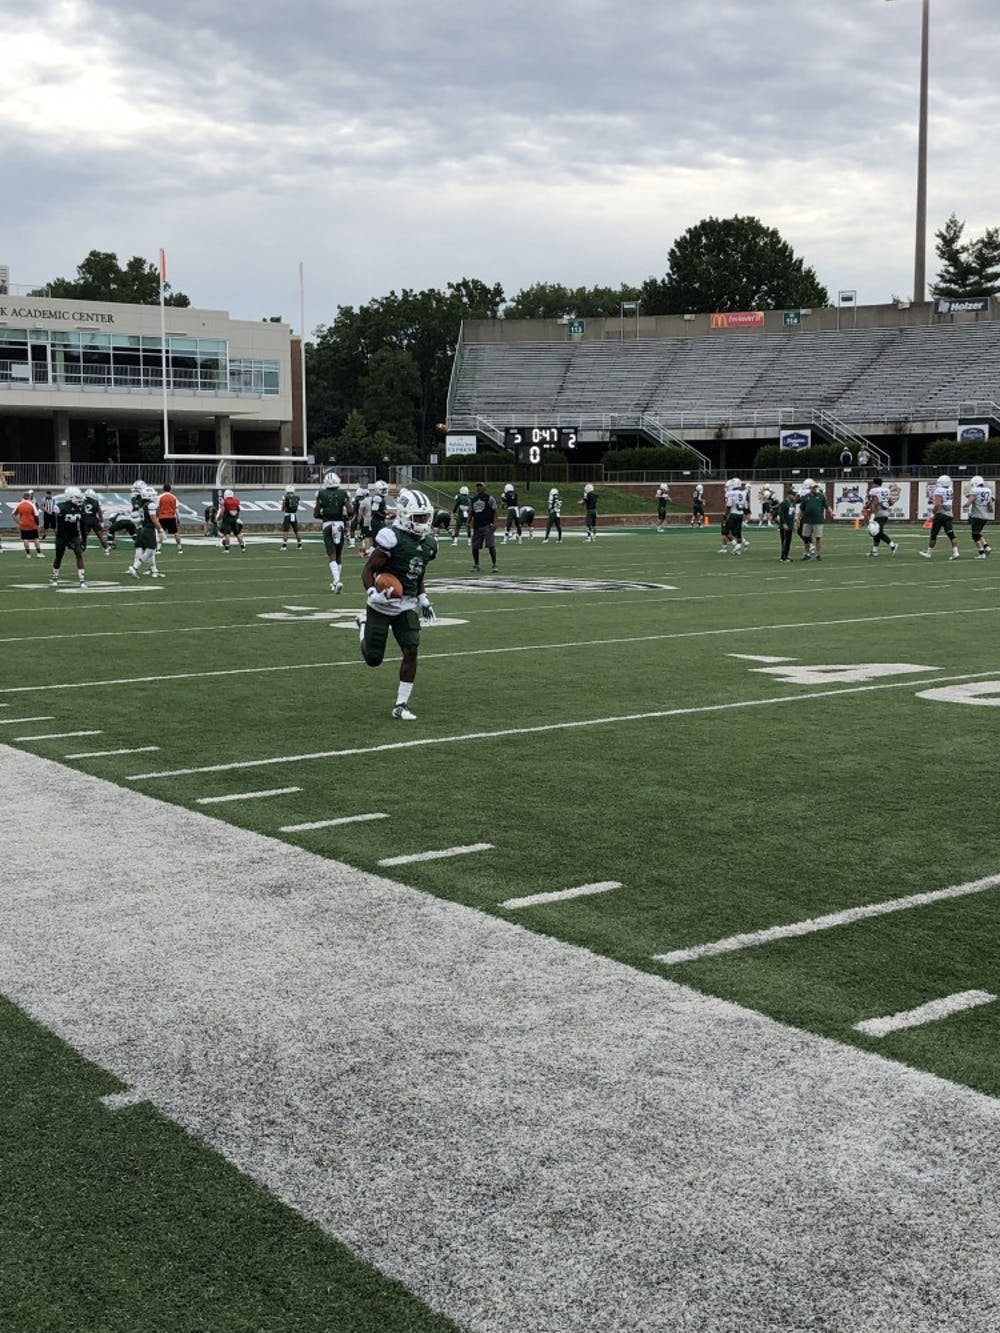 Football: 5 thoughts after Ohio's first scrimmage